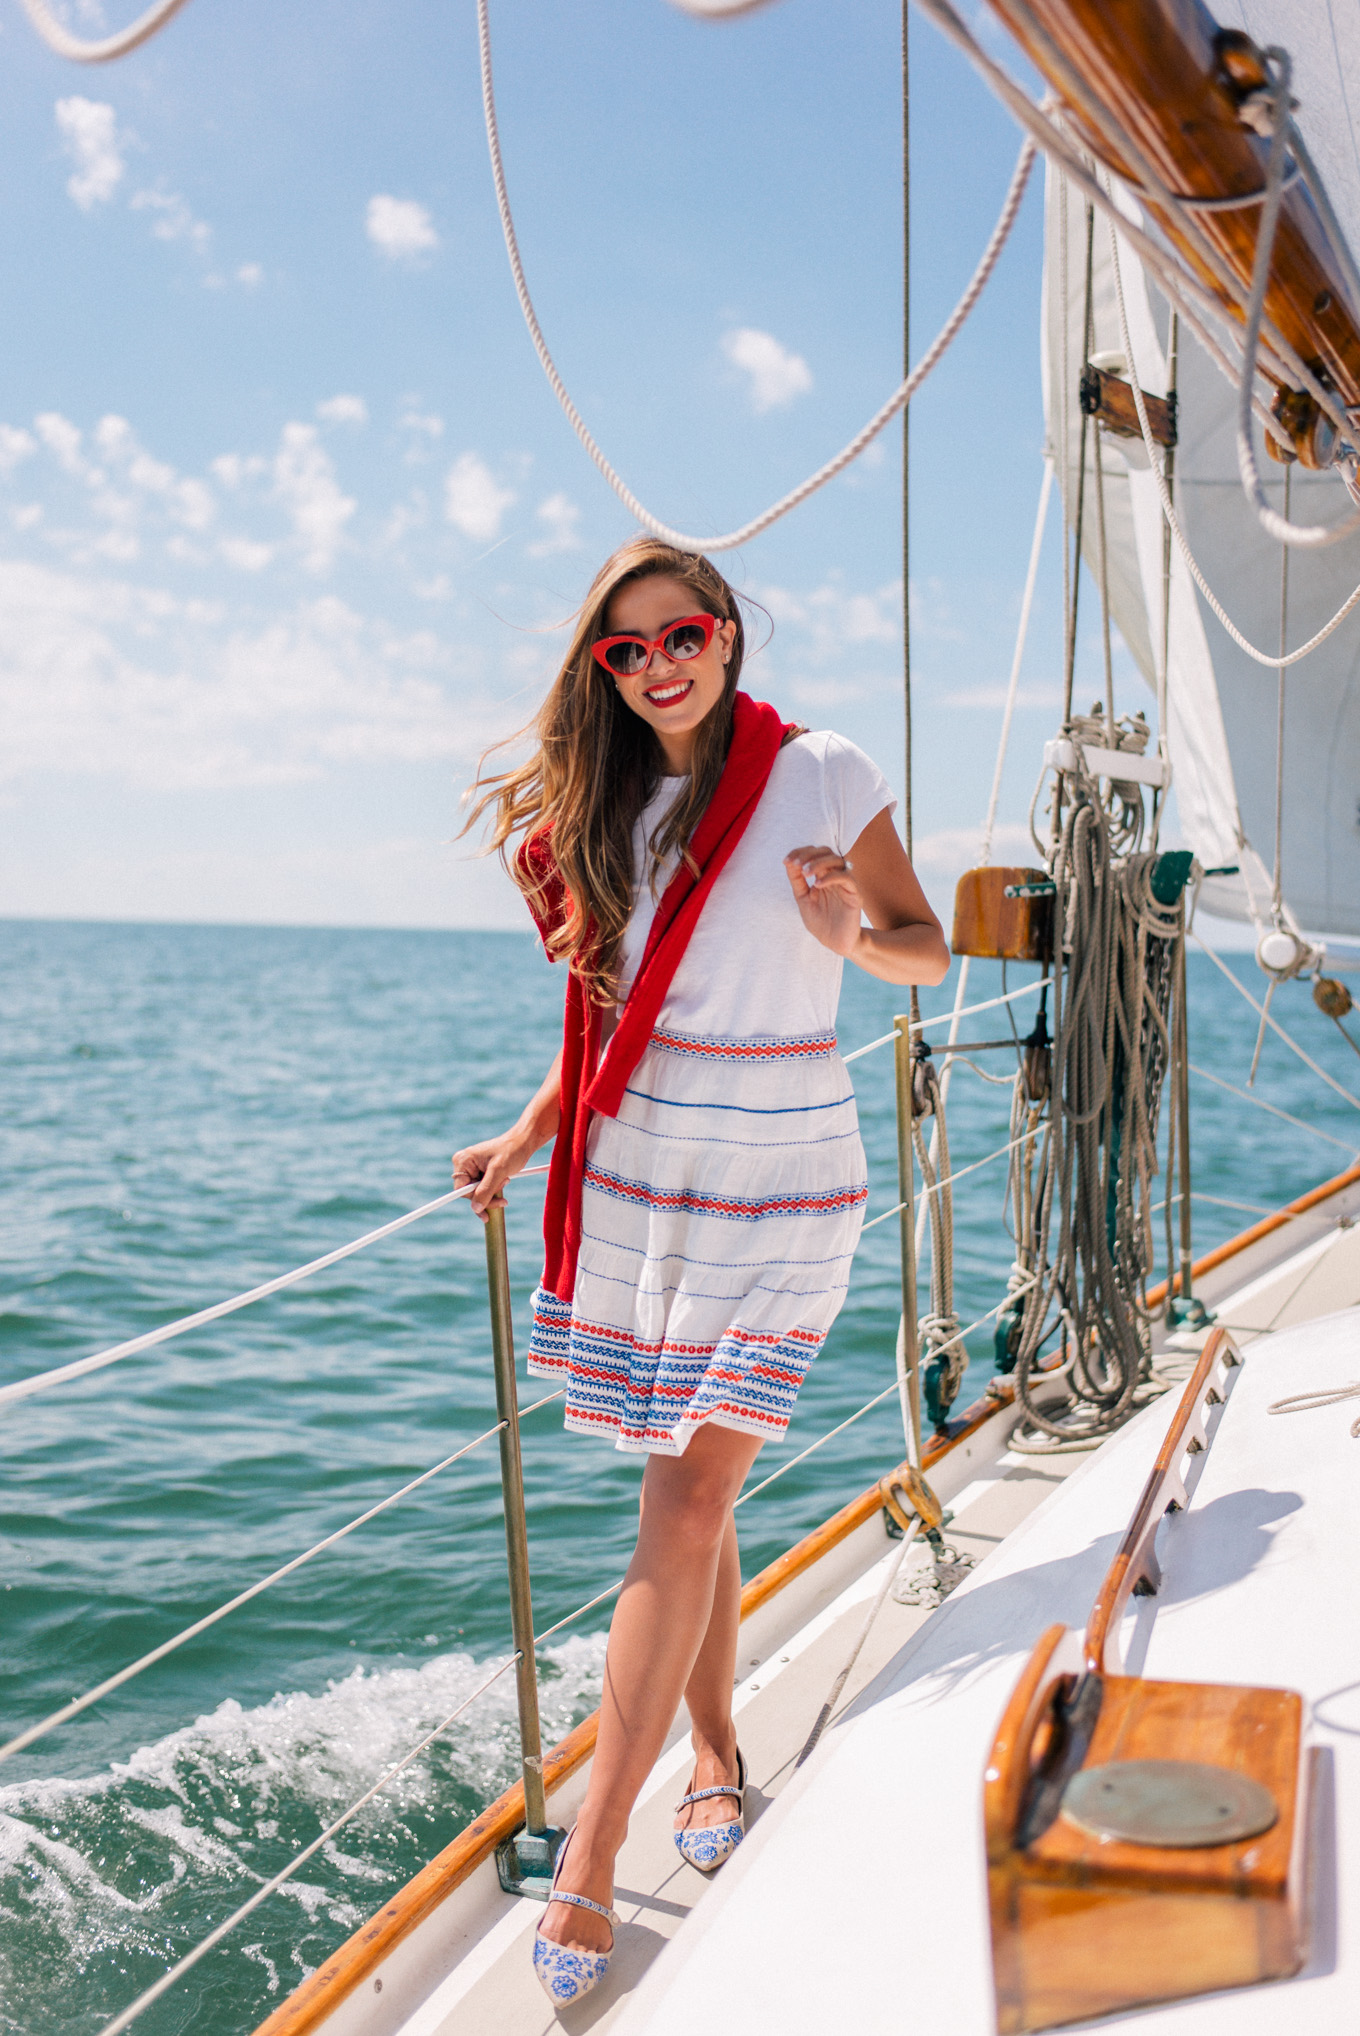 gmg-a-week-on-nantucket-part-two-1008542